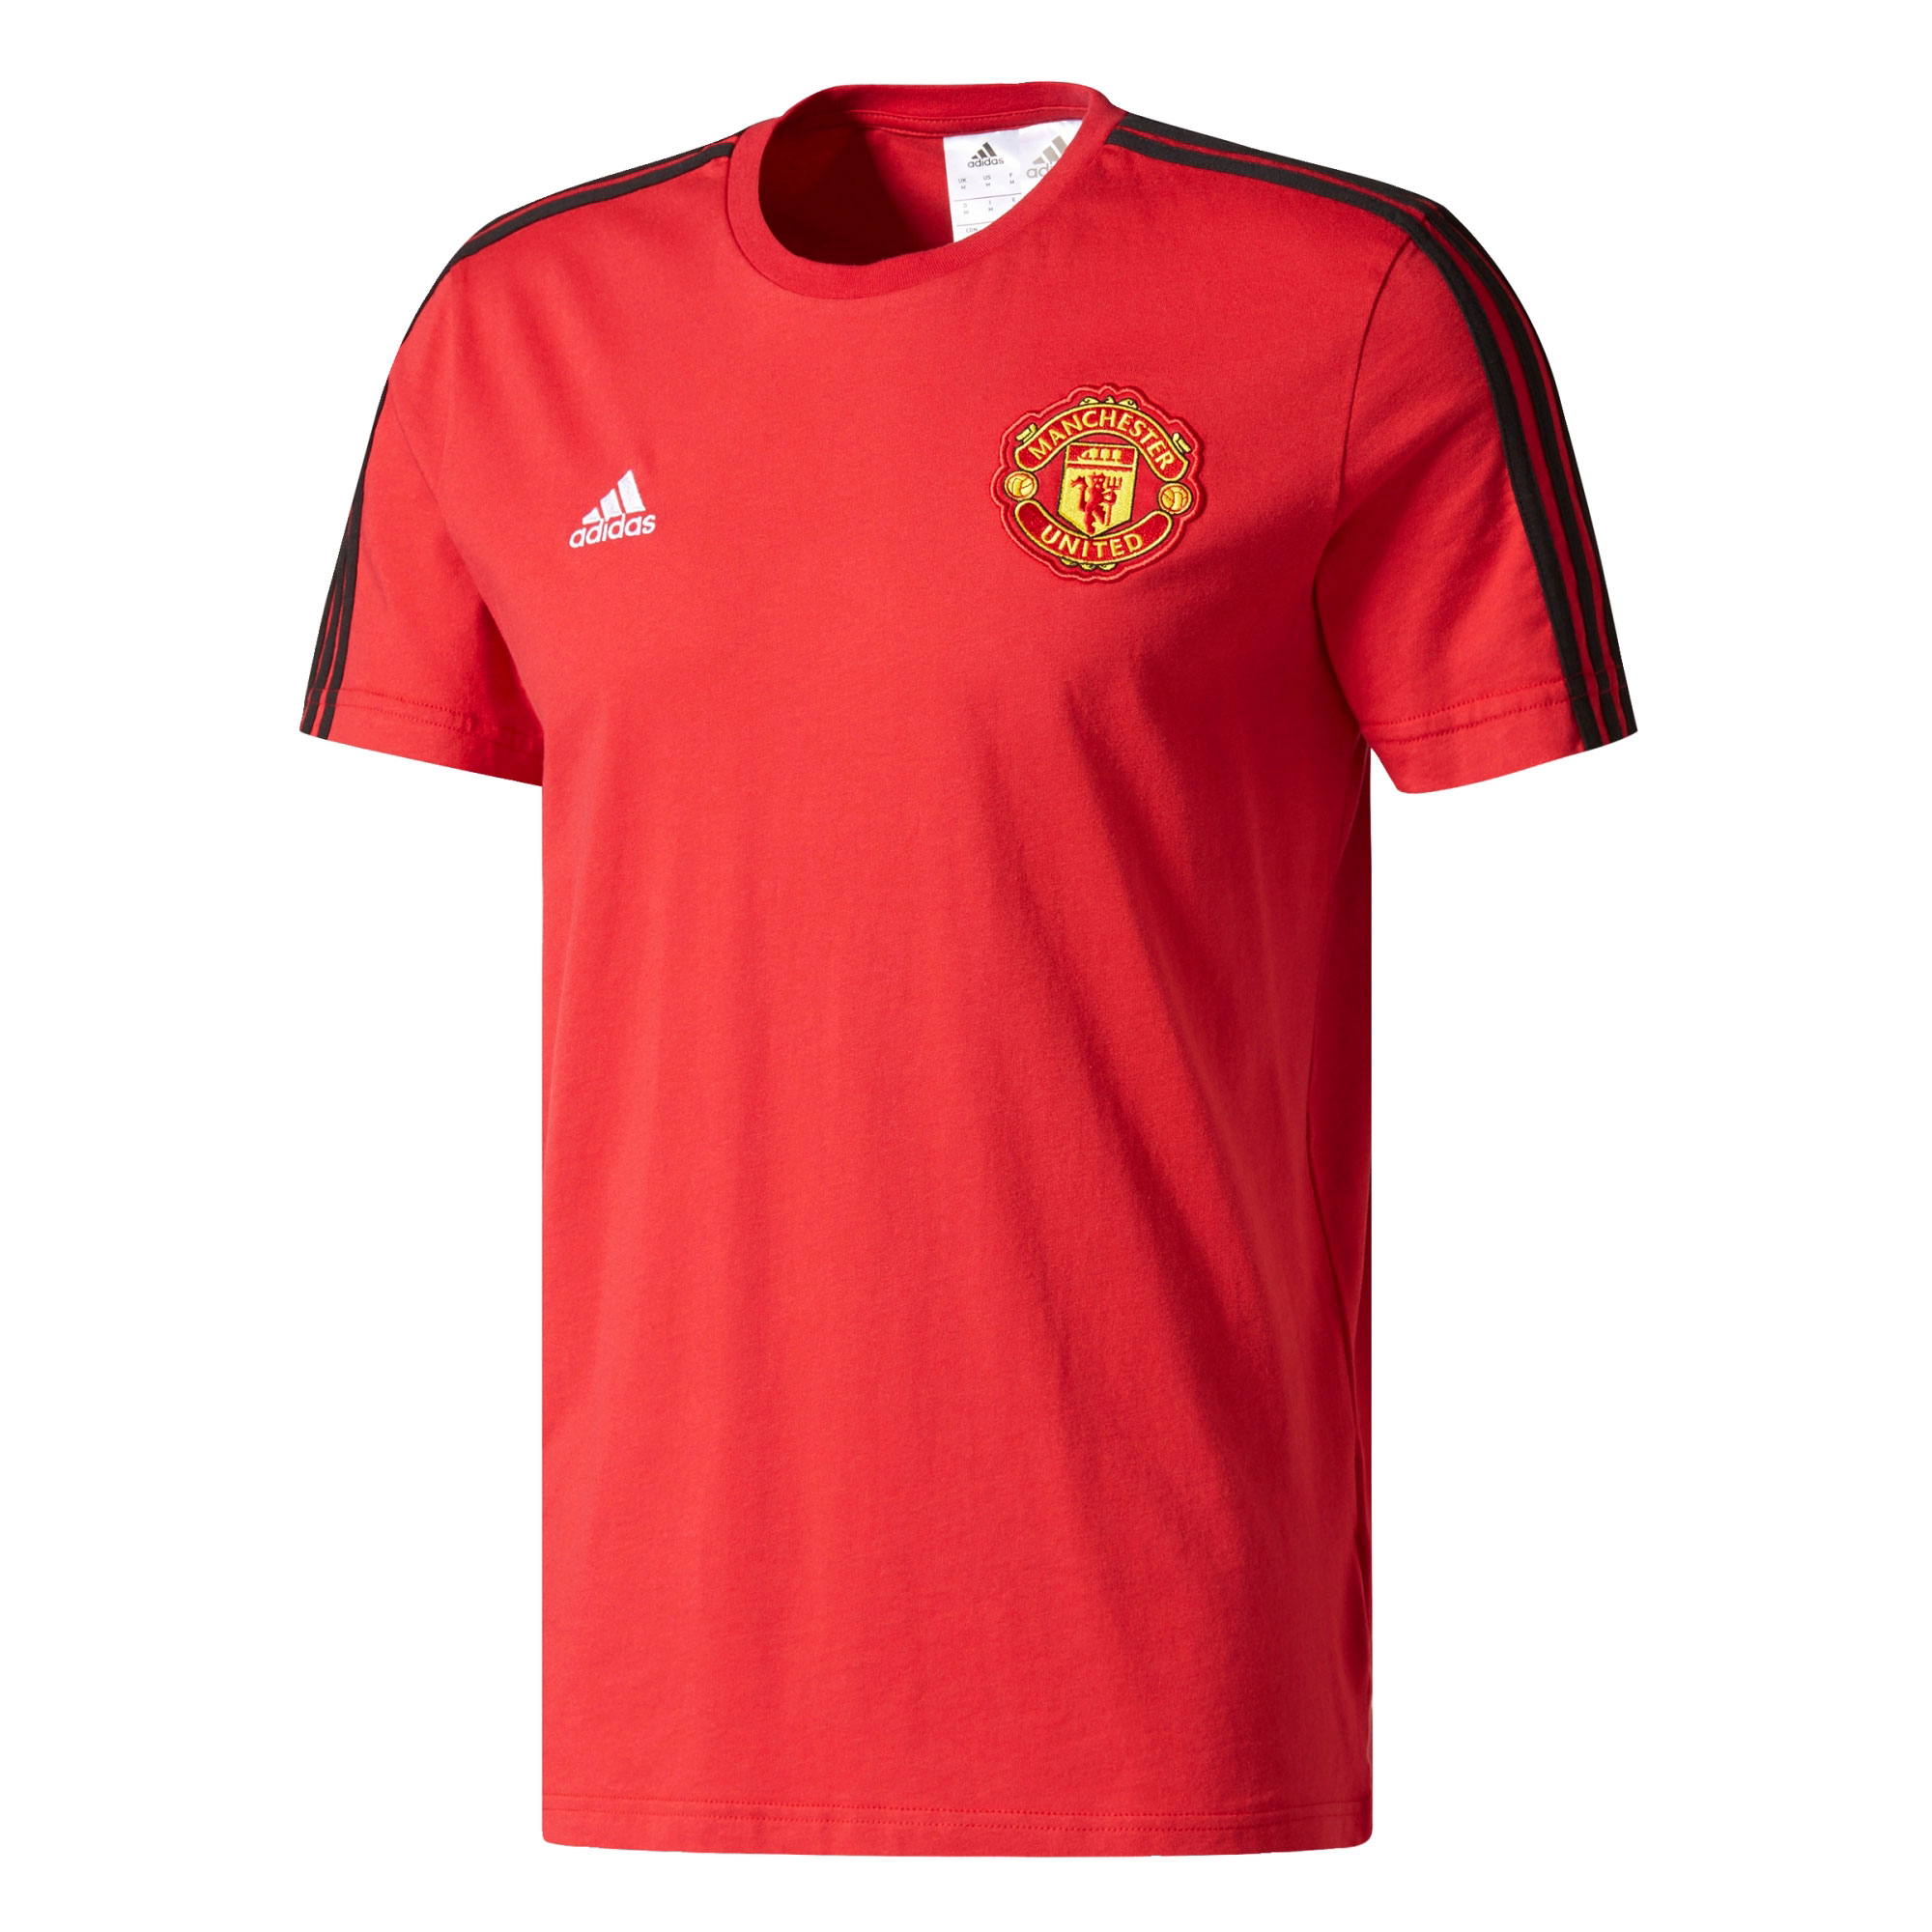 Manchester United 3 Stripe T-Shirt - Red